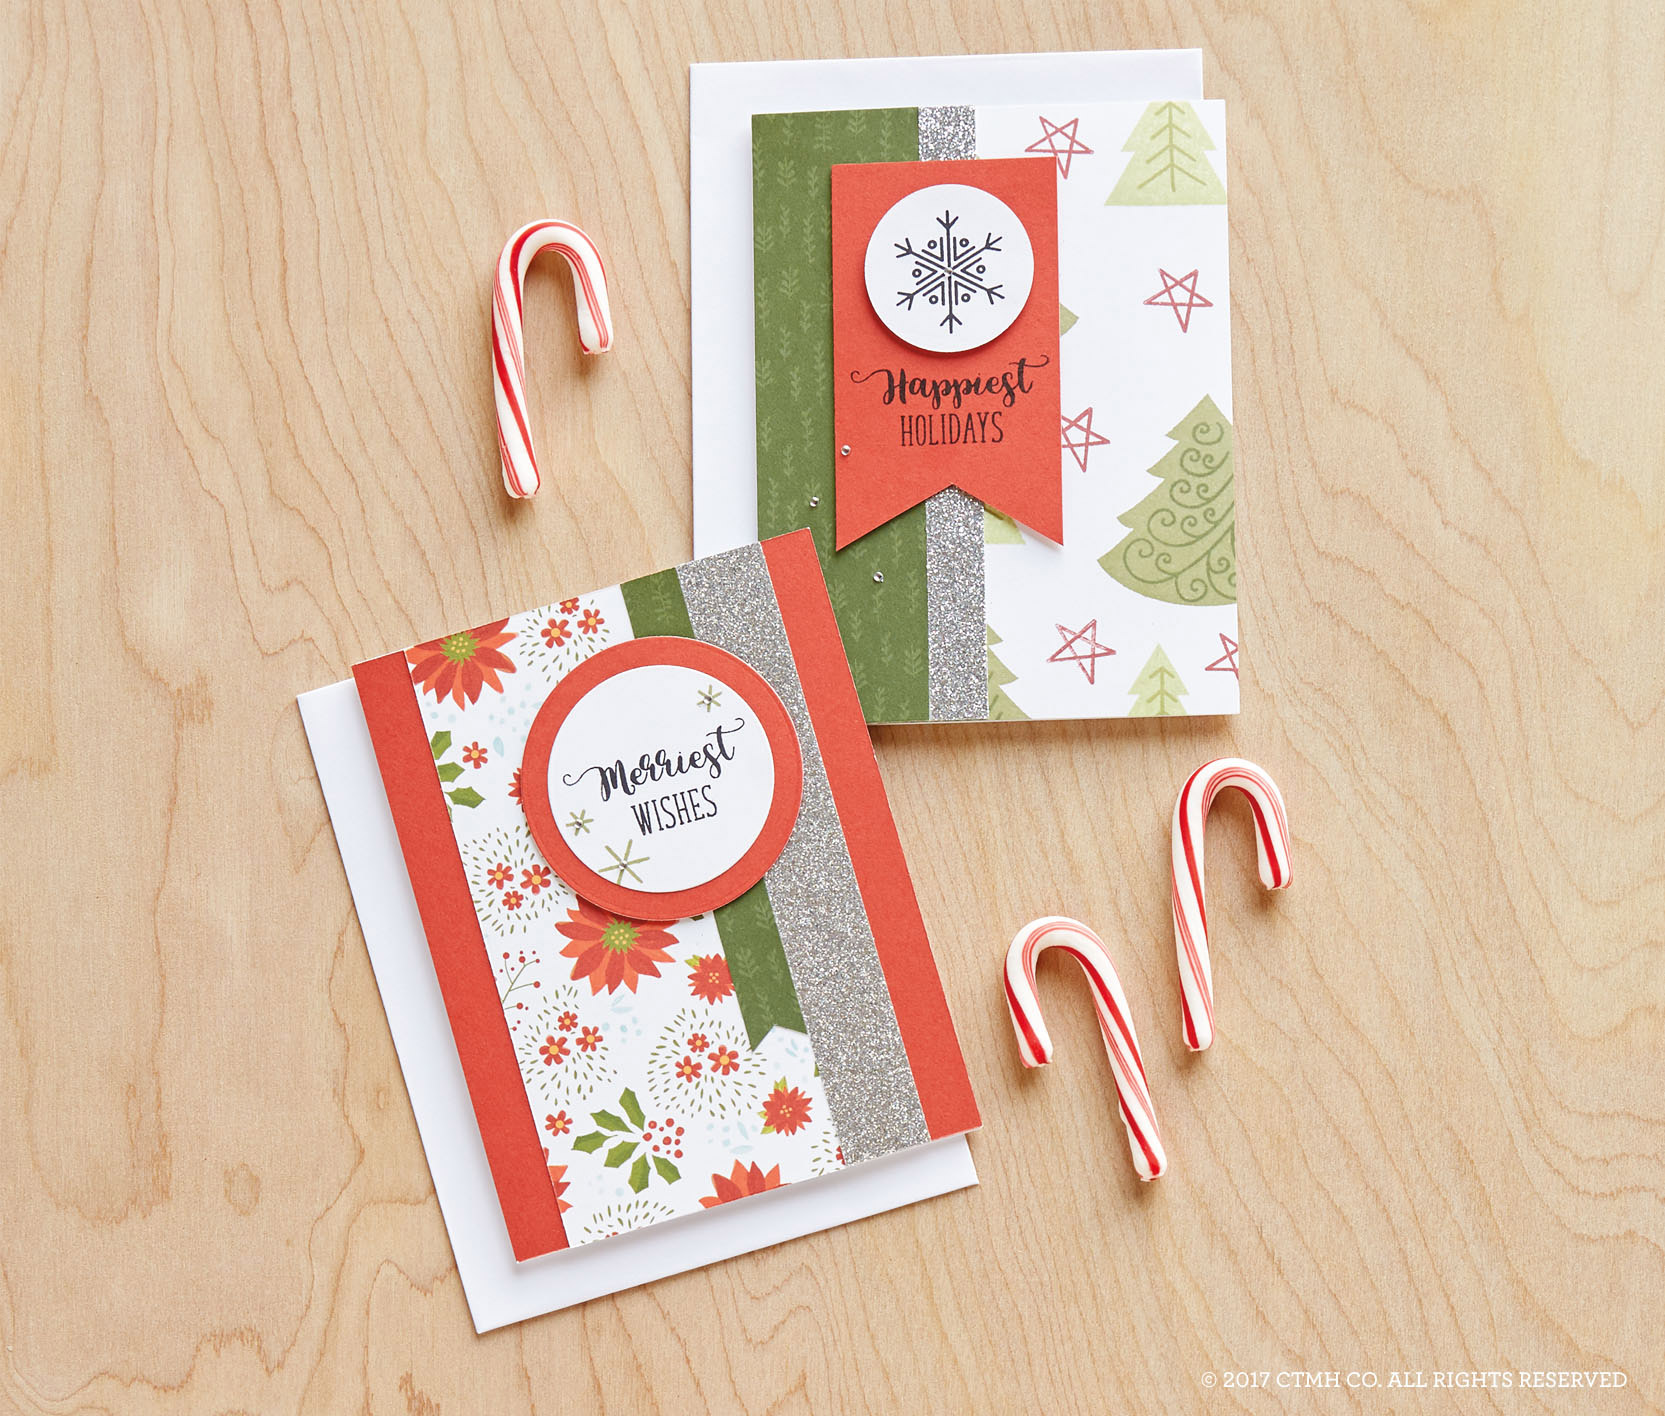 Merriest Wishes Cardmaking Kit